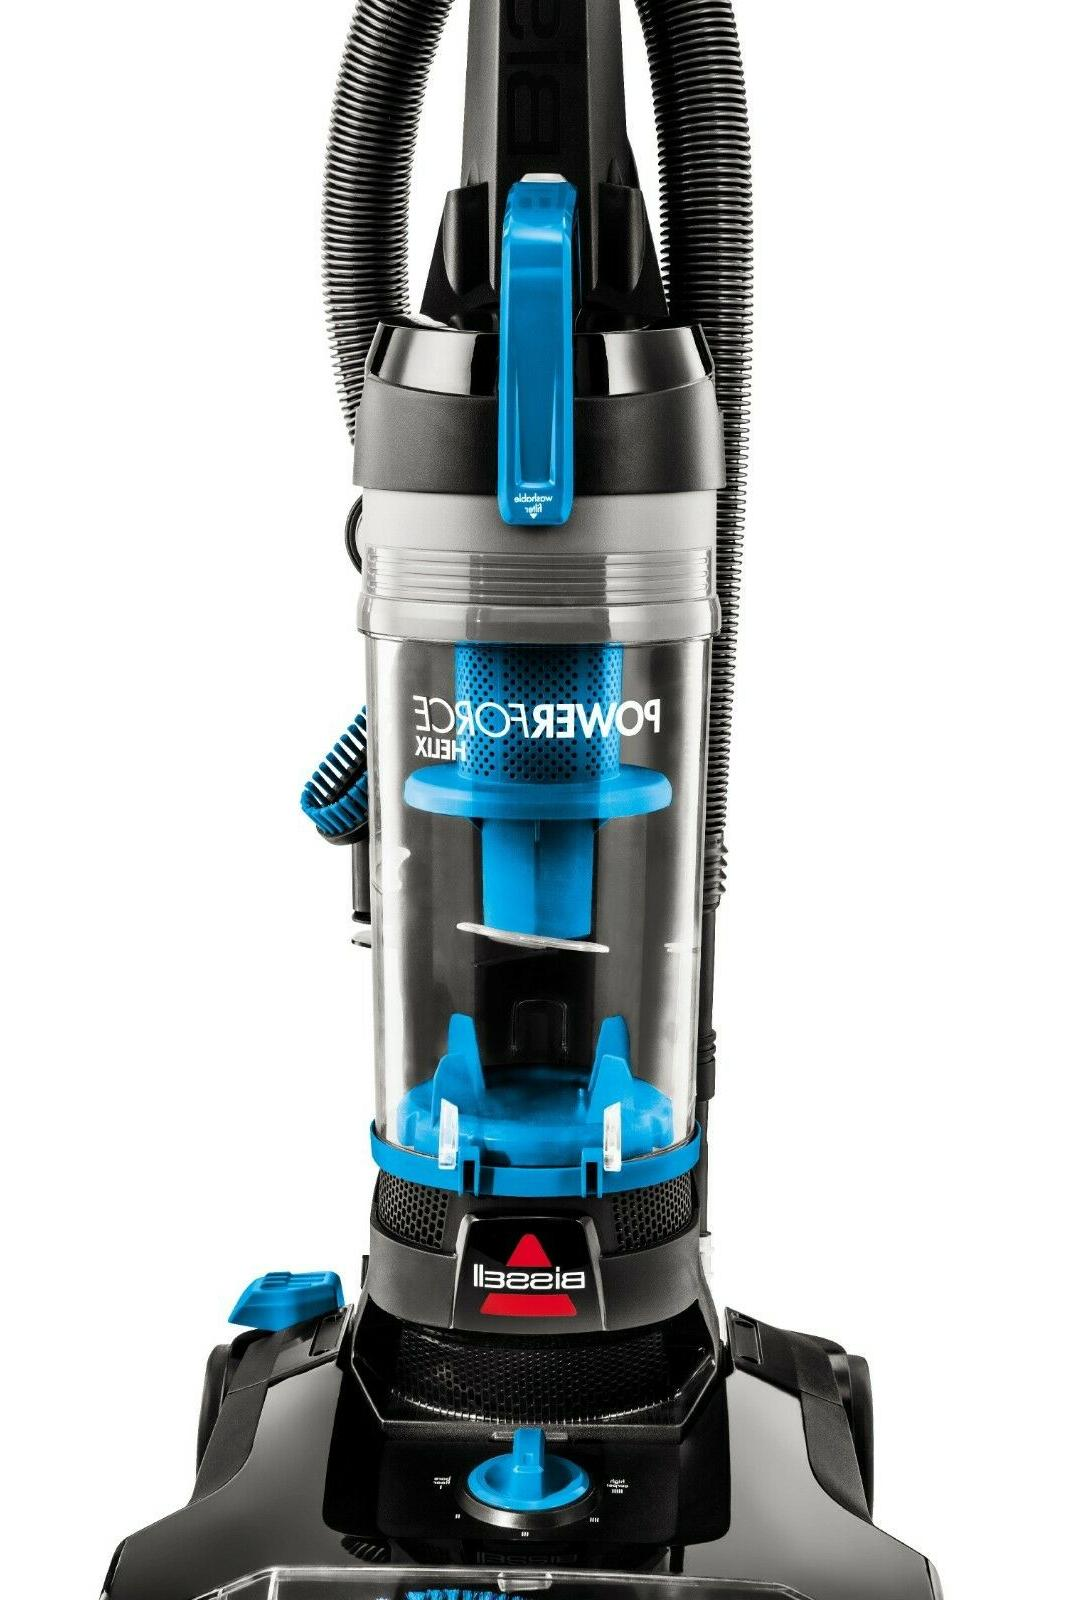 powerforce helix 2191 blue upright vacuum cleaner